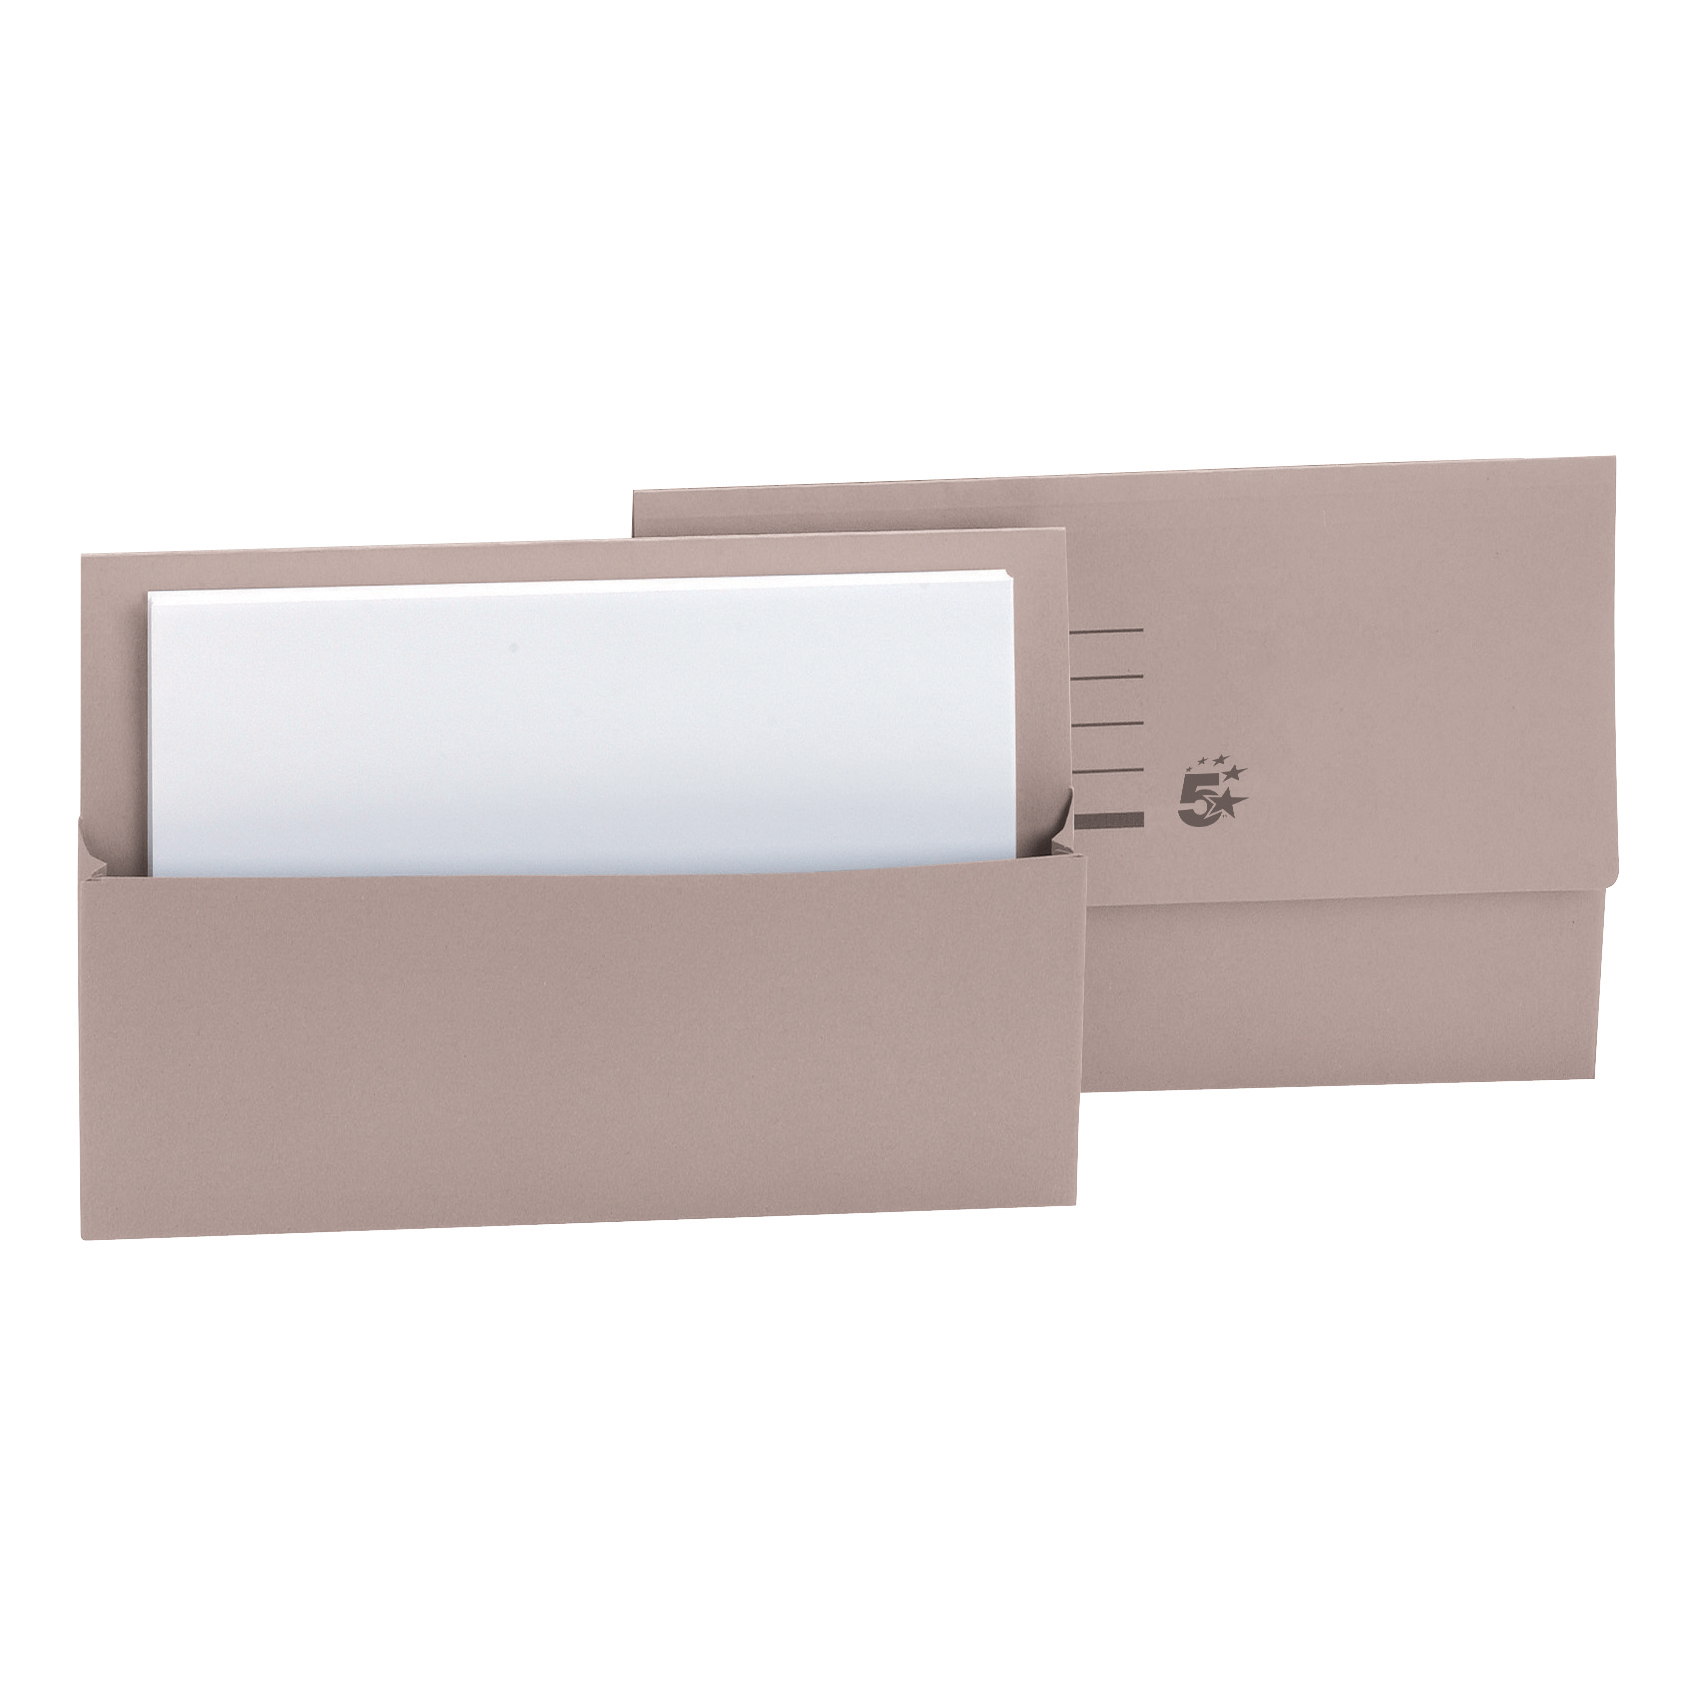 5 Star Office Document Wallet Half Flap 250gsm Recycled Capacity 32mm Foolscap Buff Pack 50